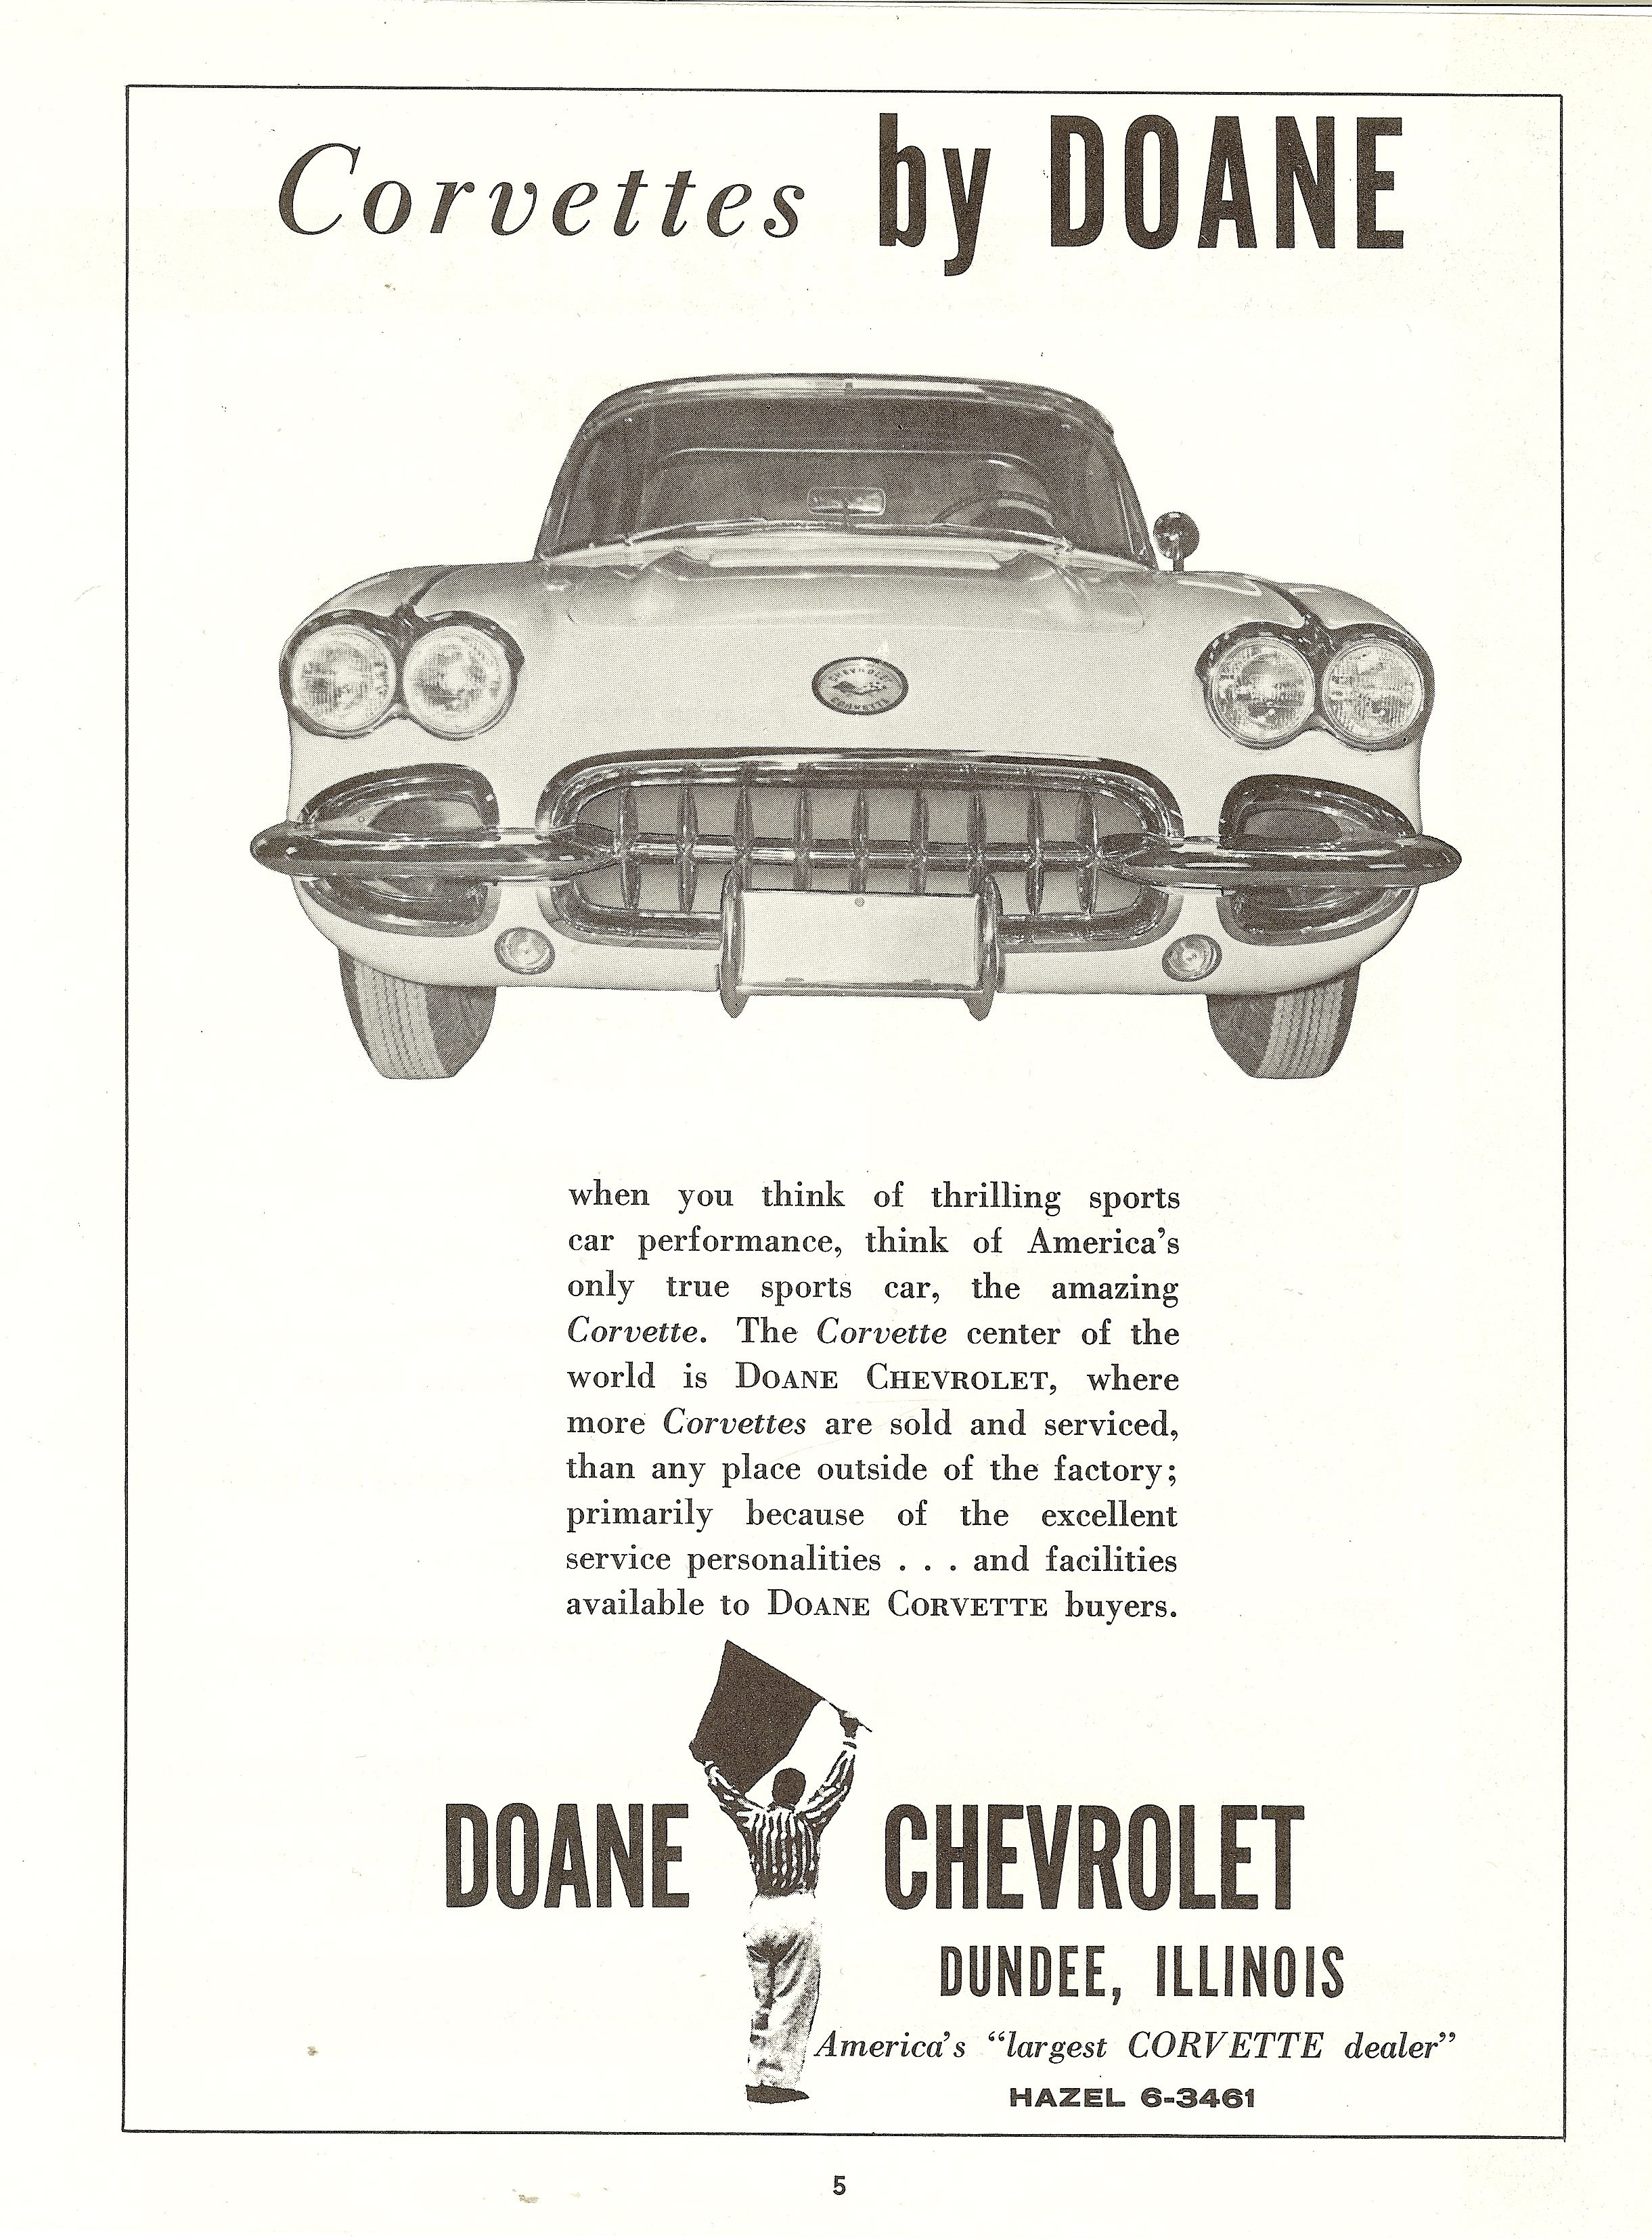 Chevrolet Dealership Ads: Doane Chevrolet Dundee, Illinois ...